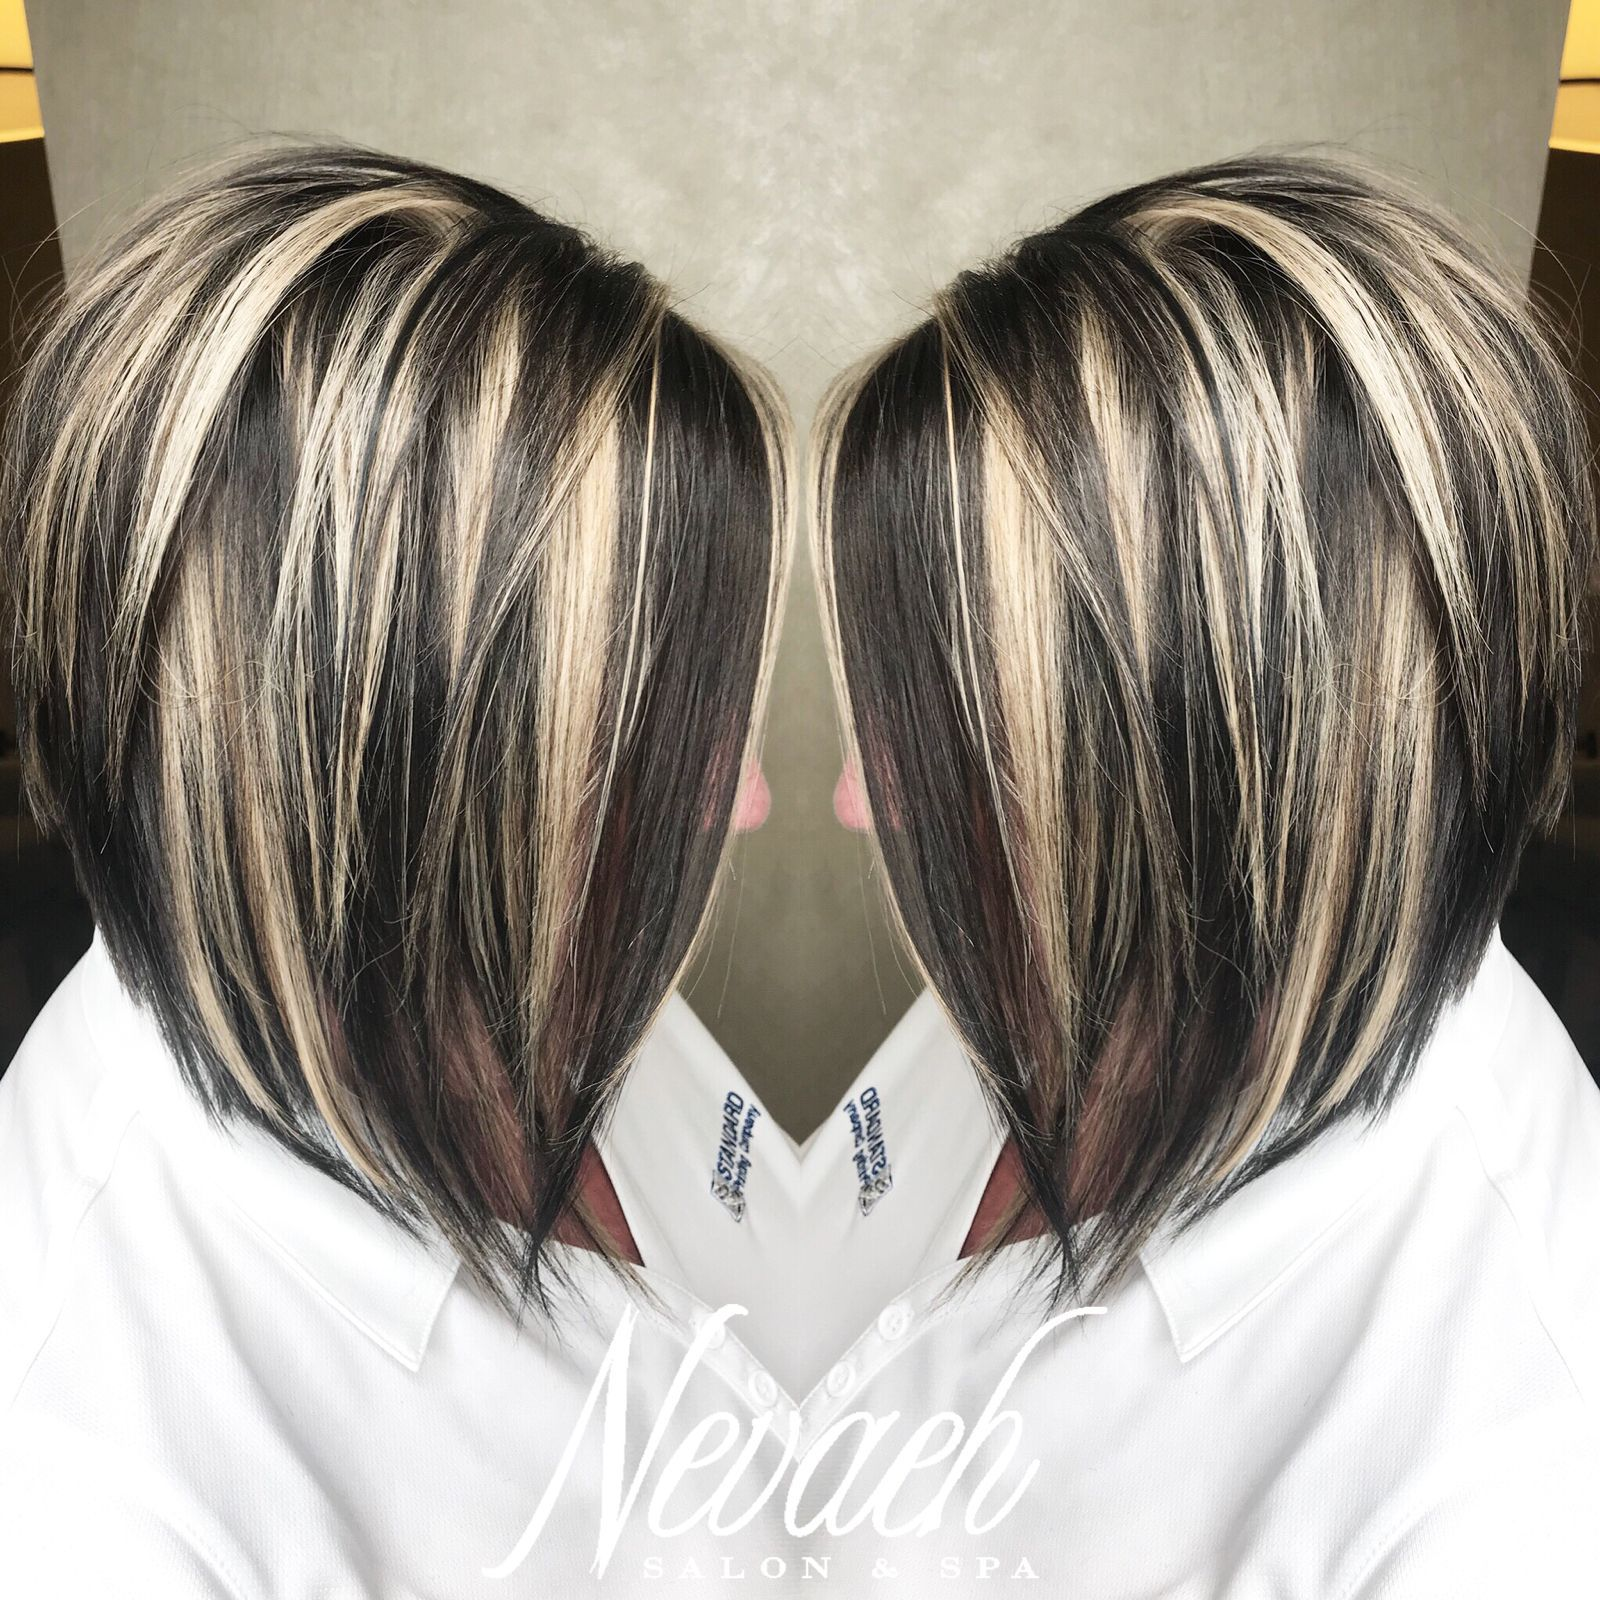 Super Fun Chunky Highlight Lowlight By Lindsey Nevaehsalonspa Brown Hair With Blonde Highlights Blonde Highlights On Dark Hair Dark Hair With Highlights